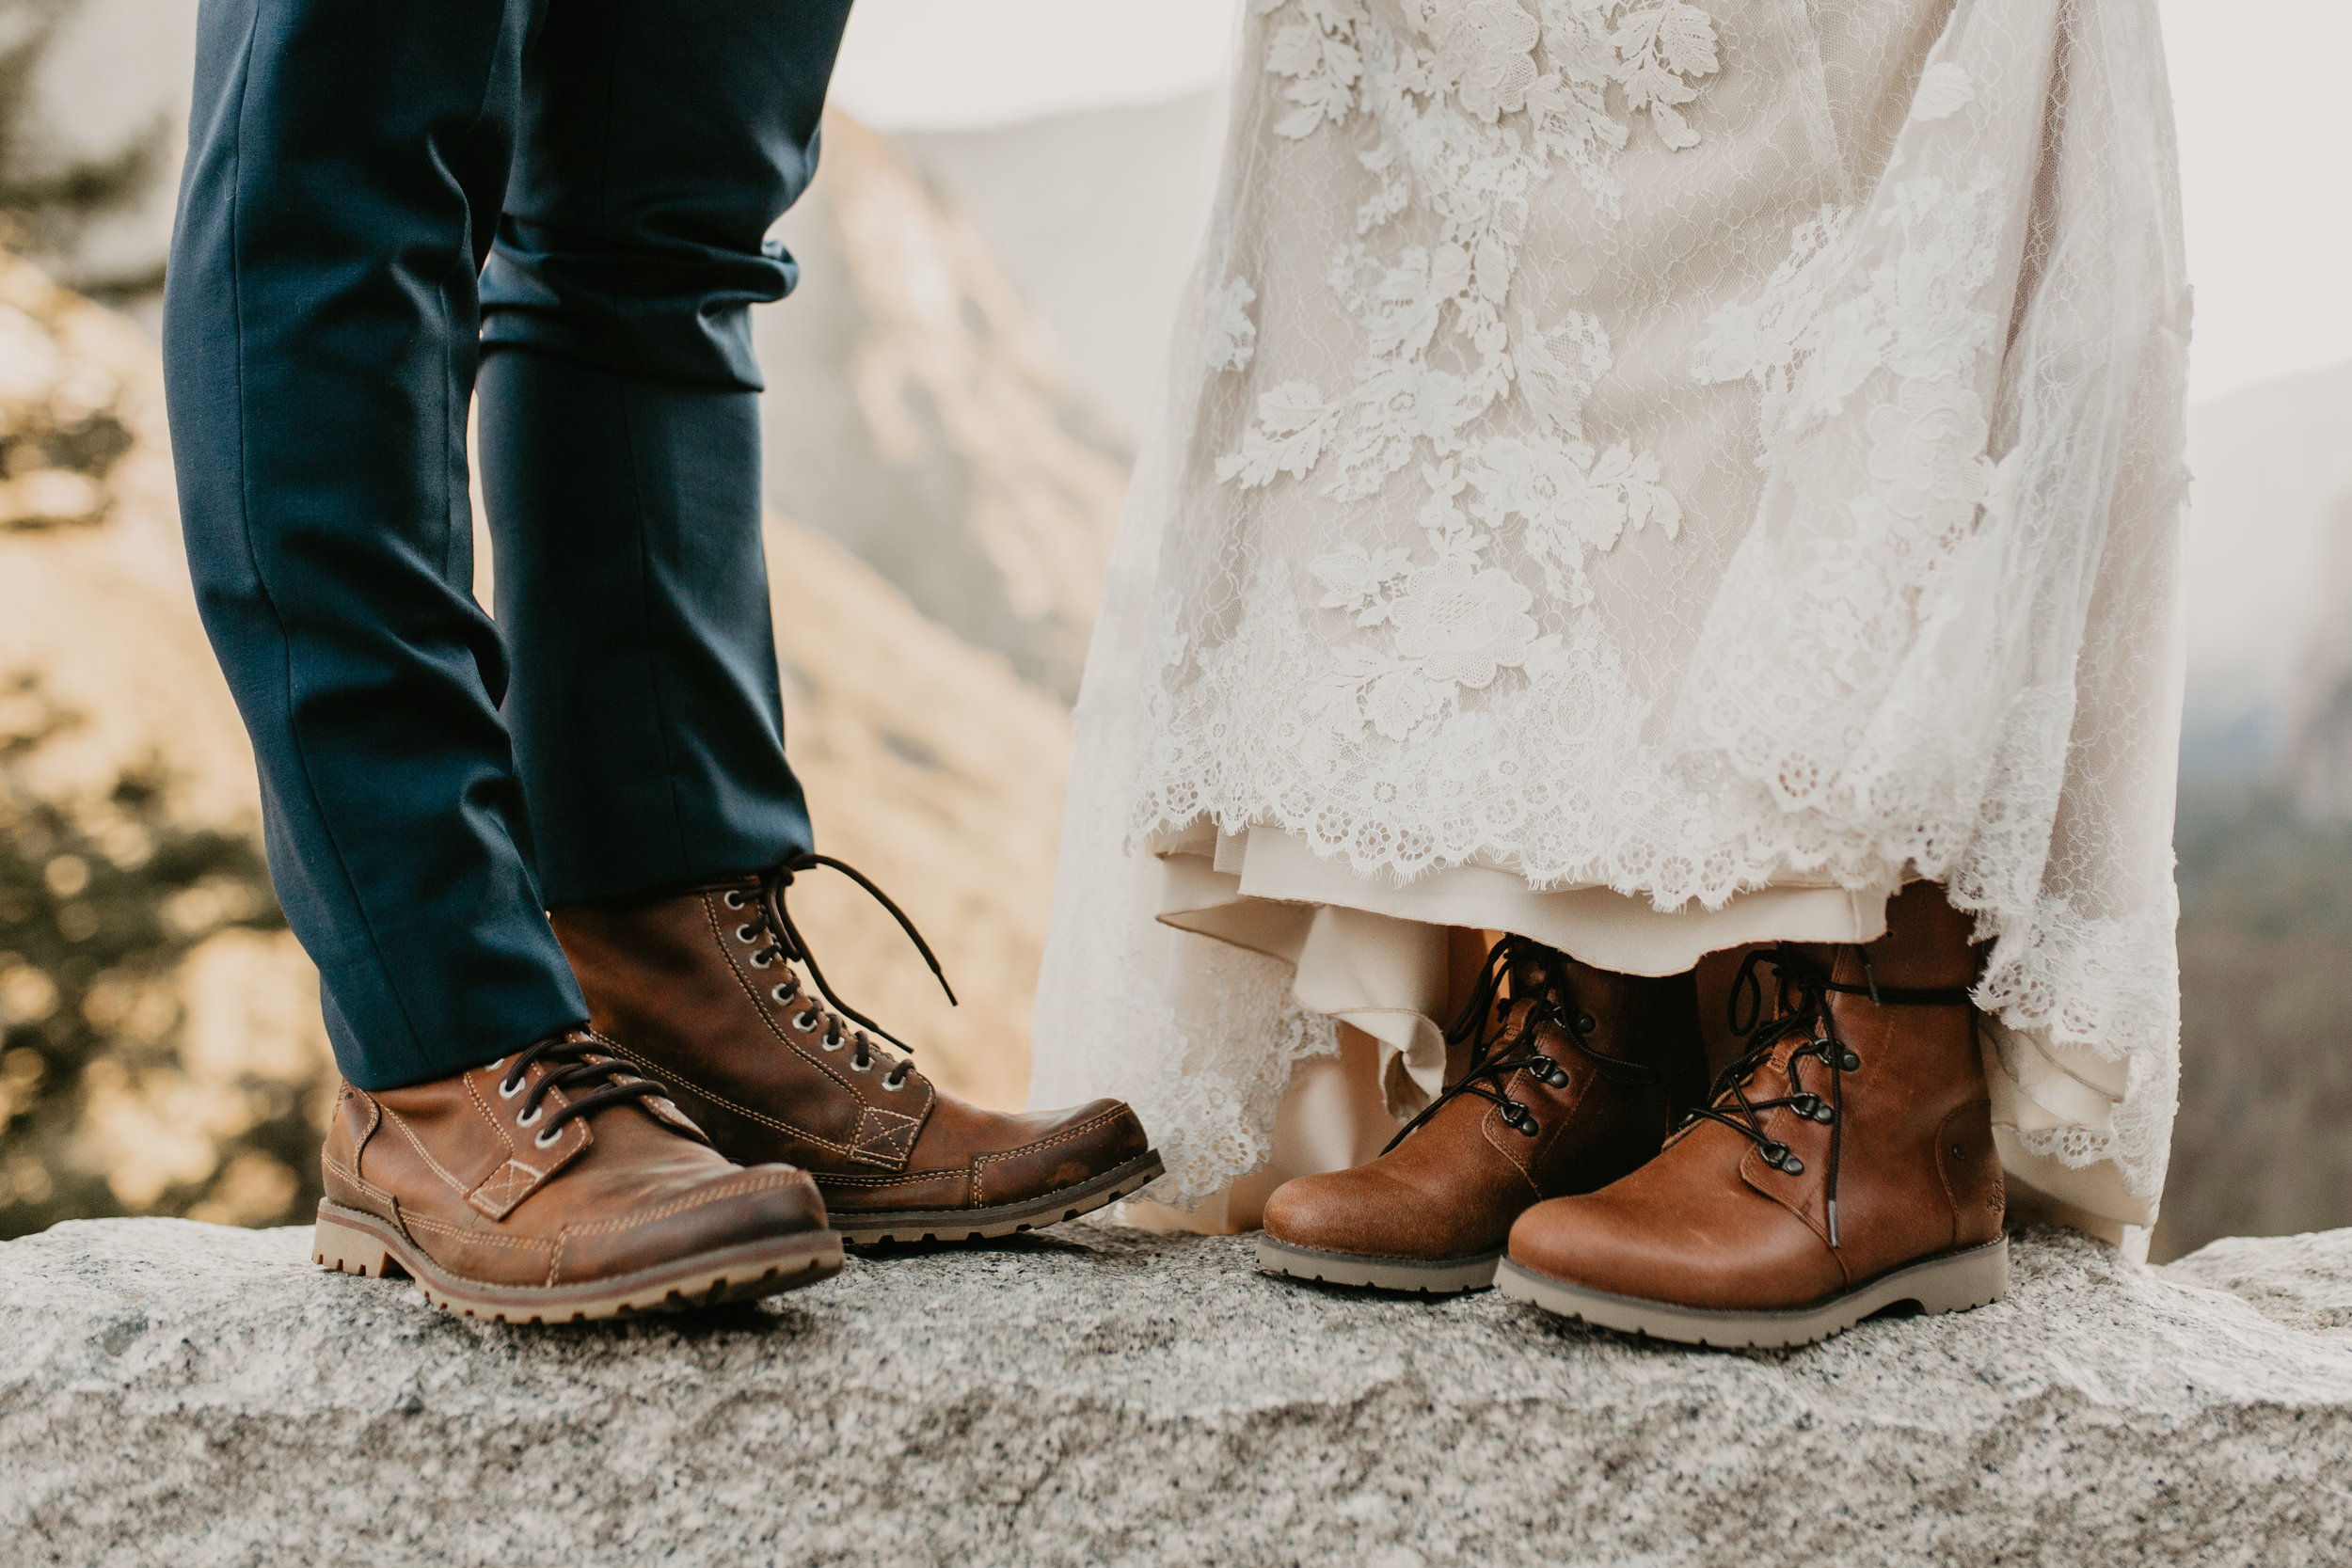 nicole-daacke-photography-intimate-elopement-wedding-yosemite-national-park-california-taft-point-sunset-photos-yosemite-valley-tunnel-view-first-look-sunrise-golden-granite-hiking-adventure-wedding-adventurous-elopement-photographer-7.jpg